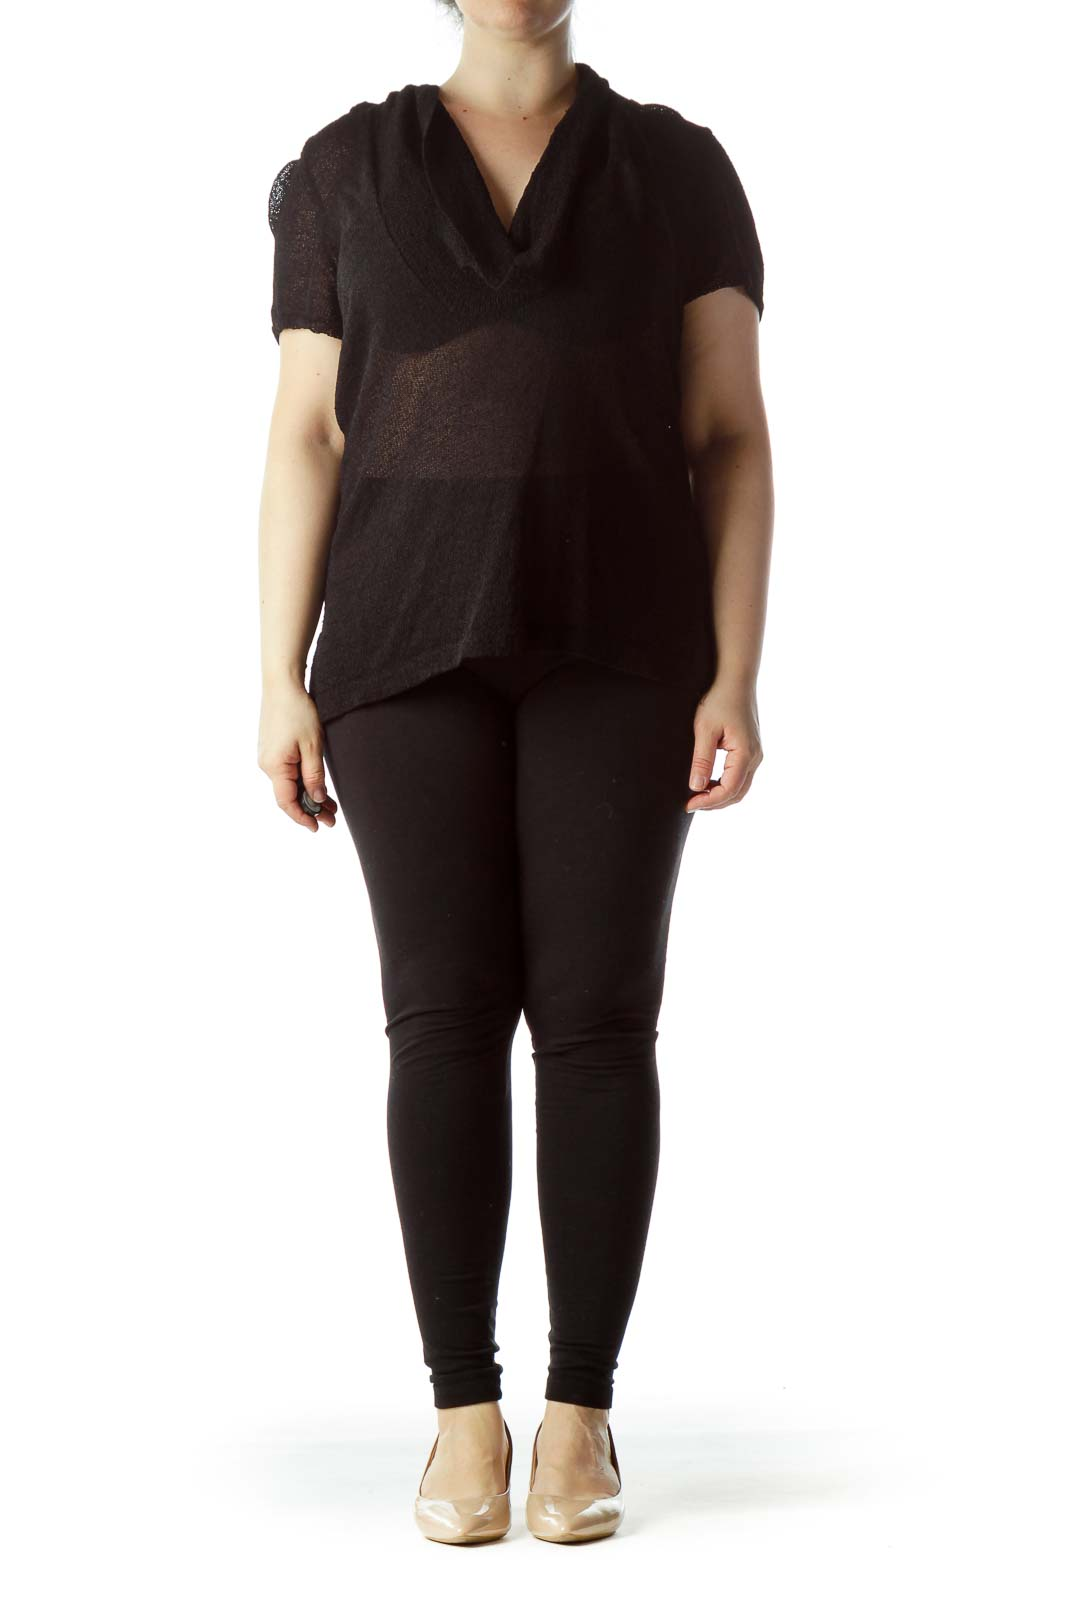 Black Knit See Through Cowl Neck Flared Top